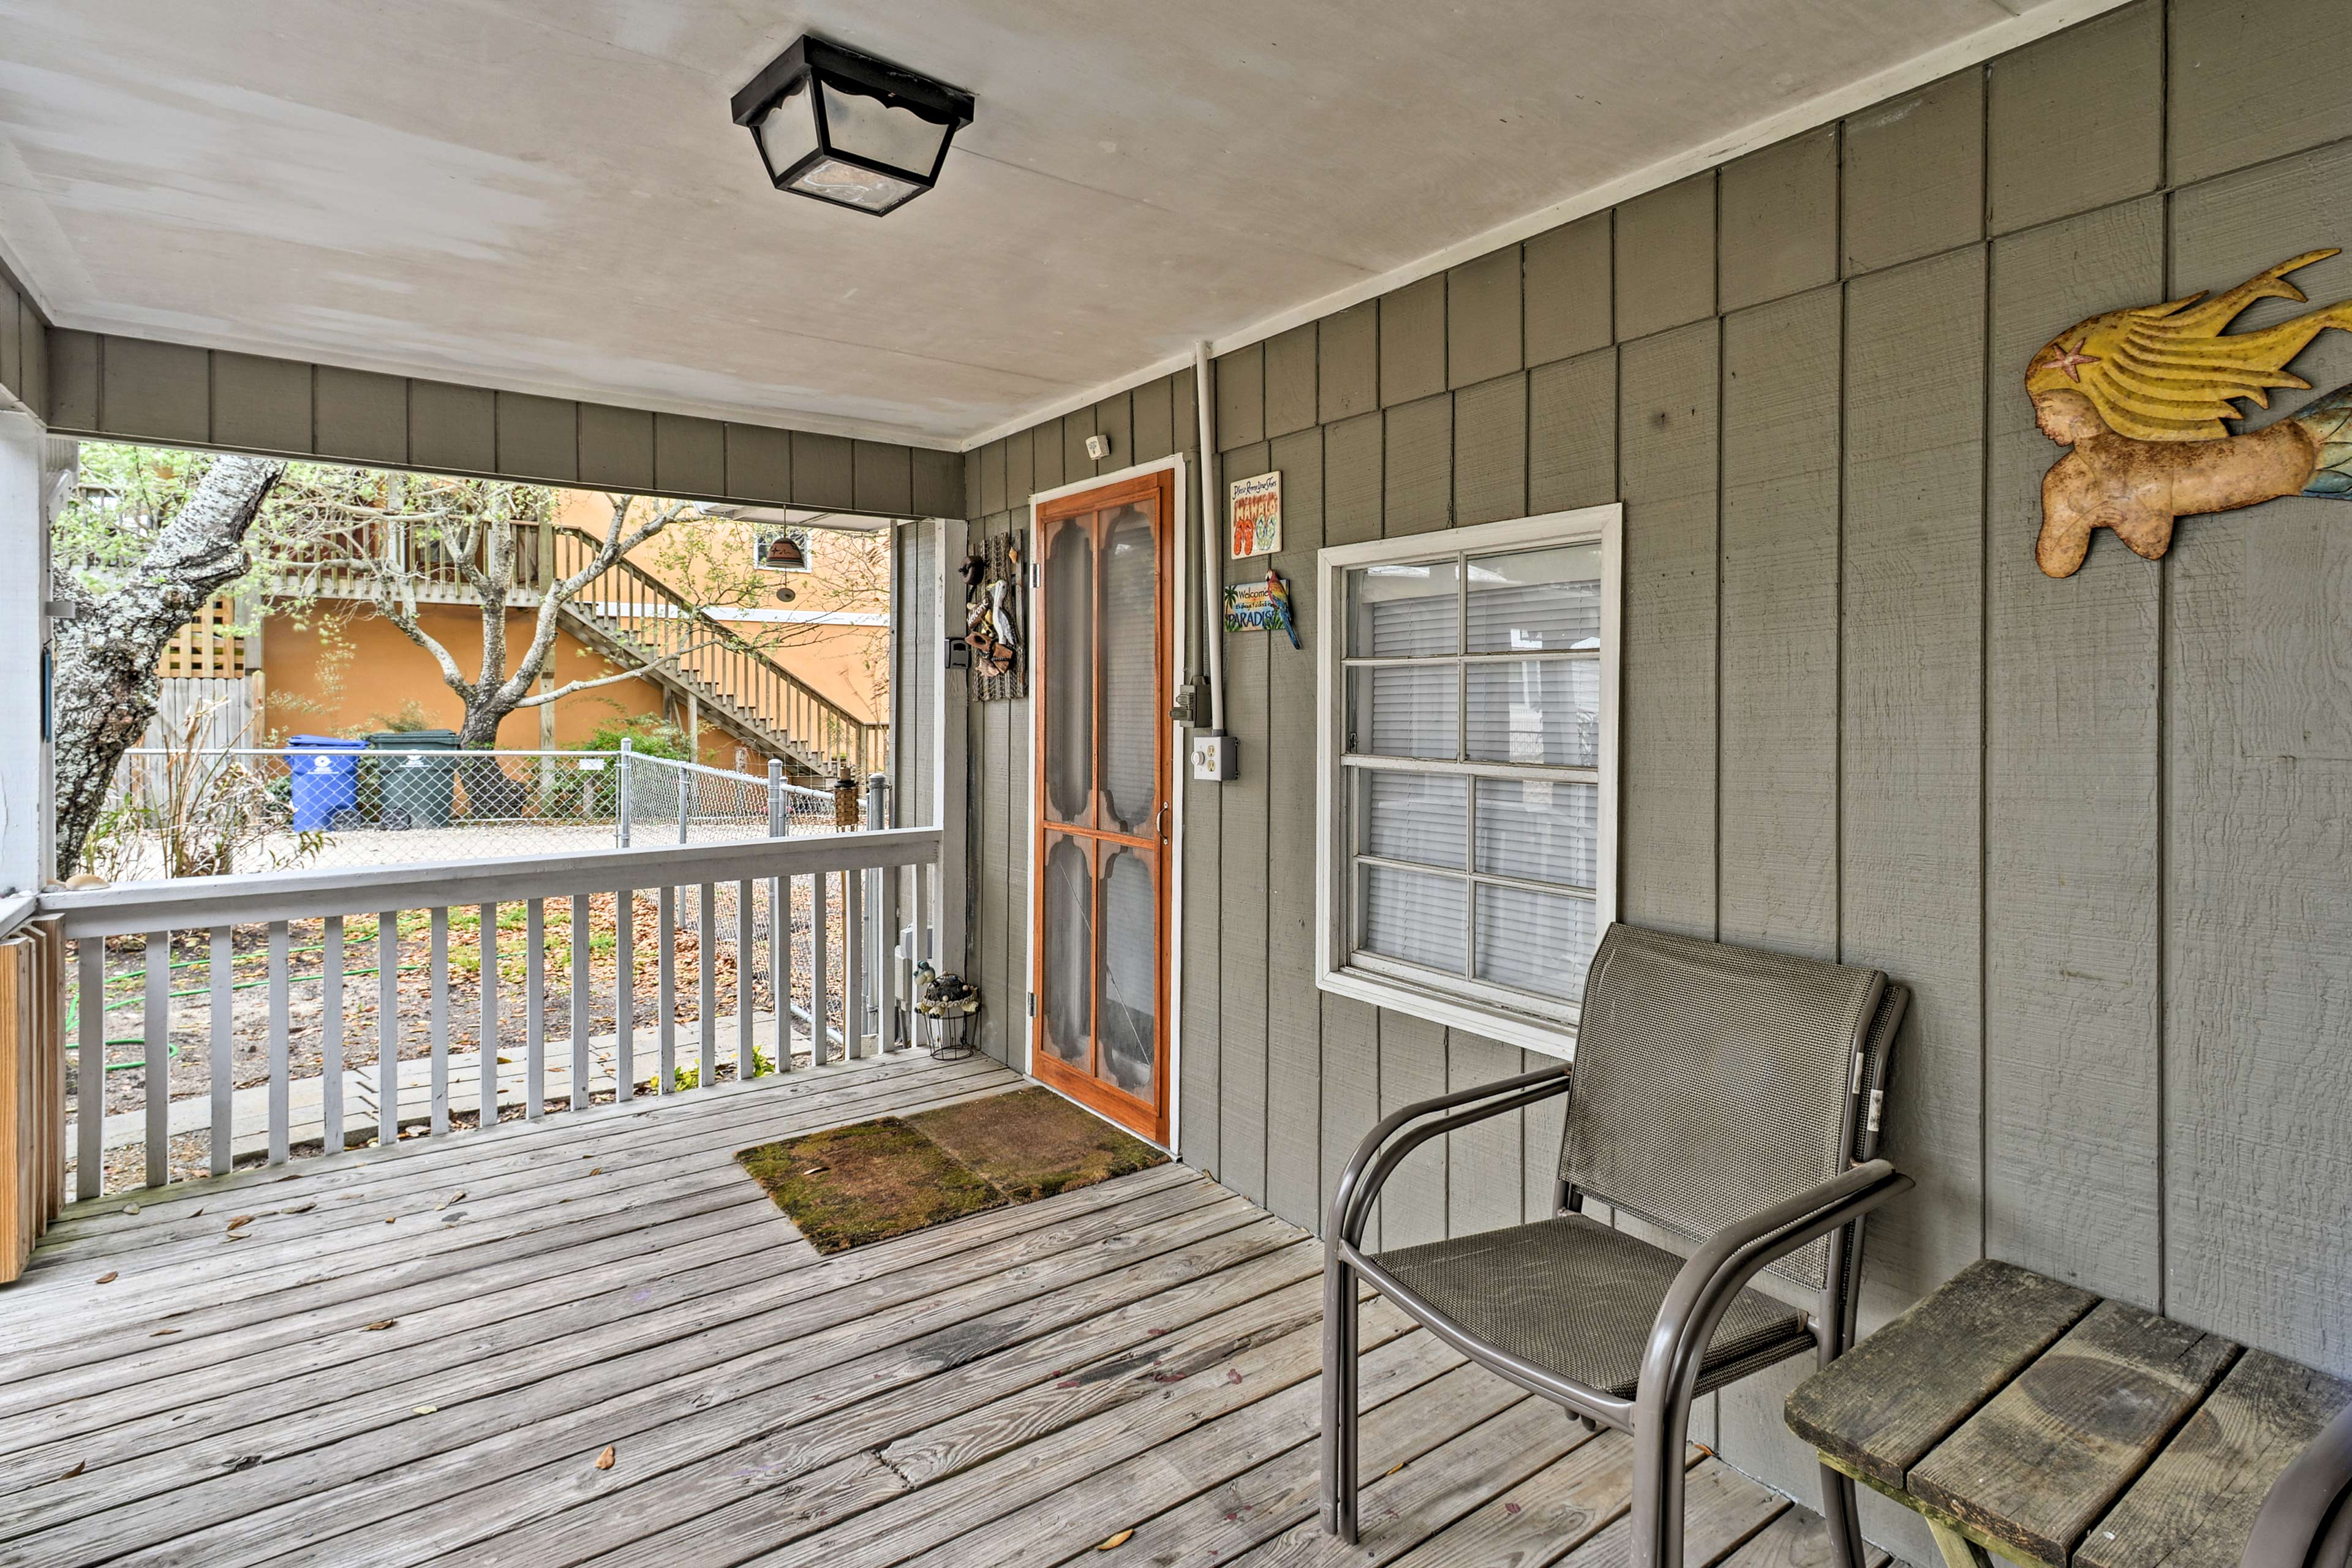 Unwind on the furnished front porch with a refreshing beverage.